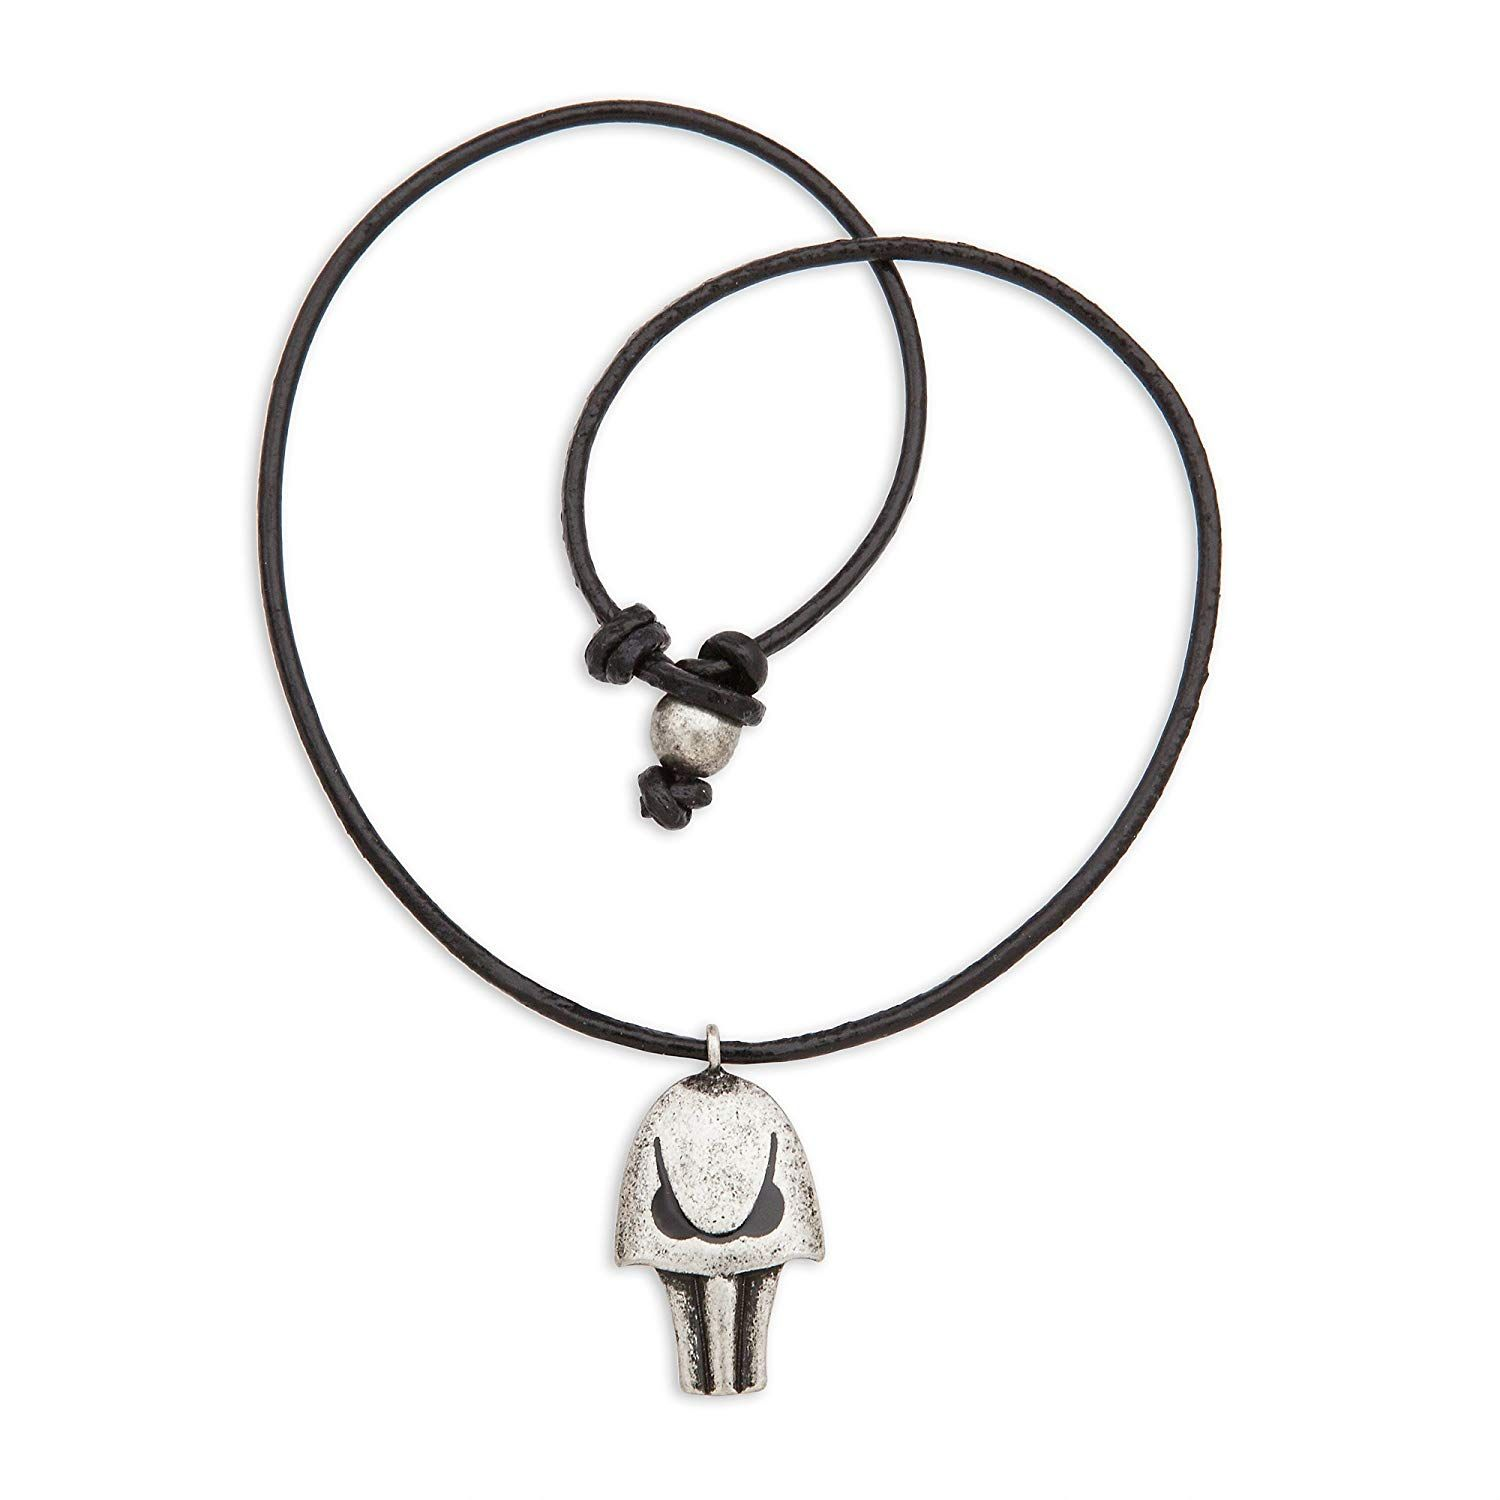 Disney Hades Necklace Hercules Metallic Thank You For Viewing Our Picture This Is An Affiliate Link Chainnecklaces Disney Jewelry Necklace Hercules